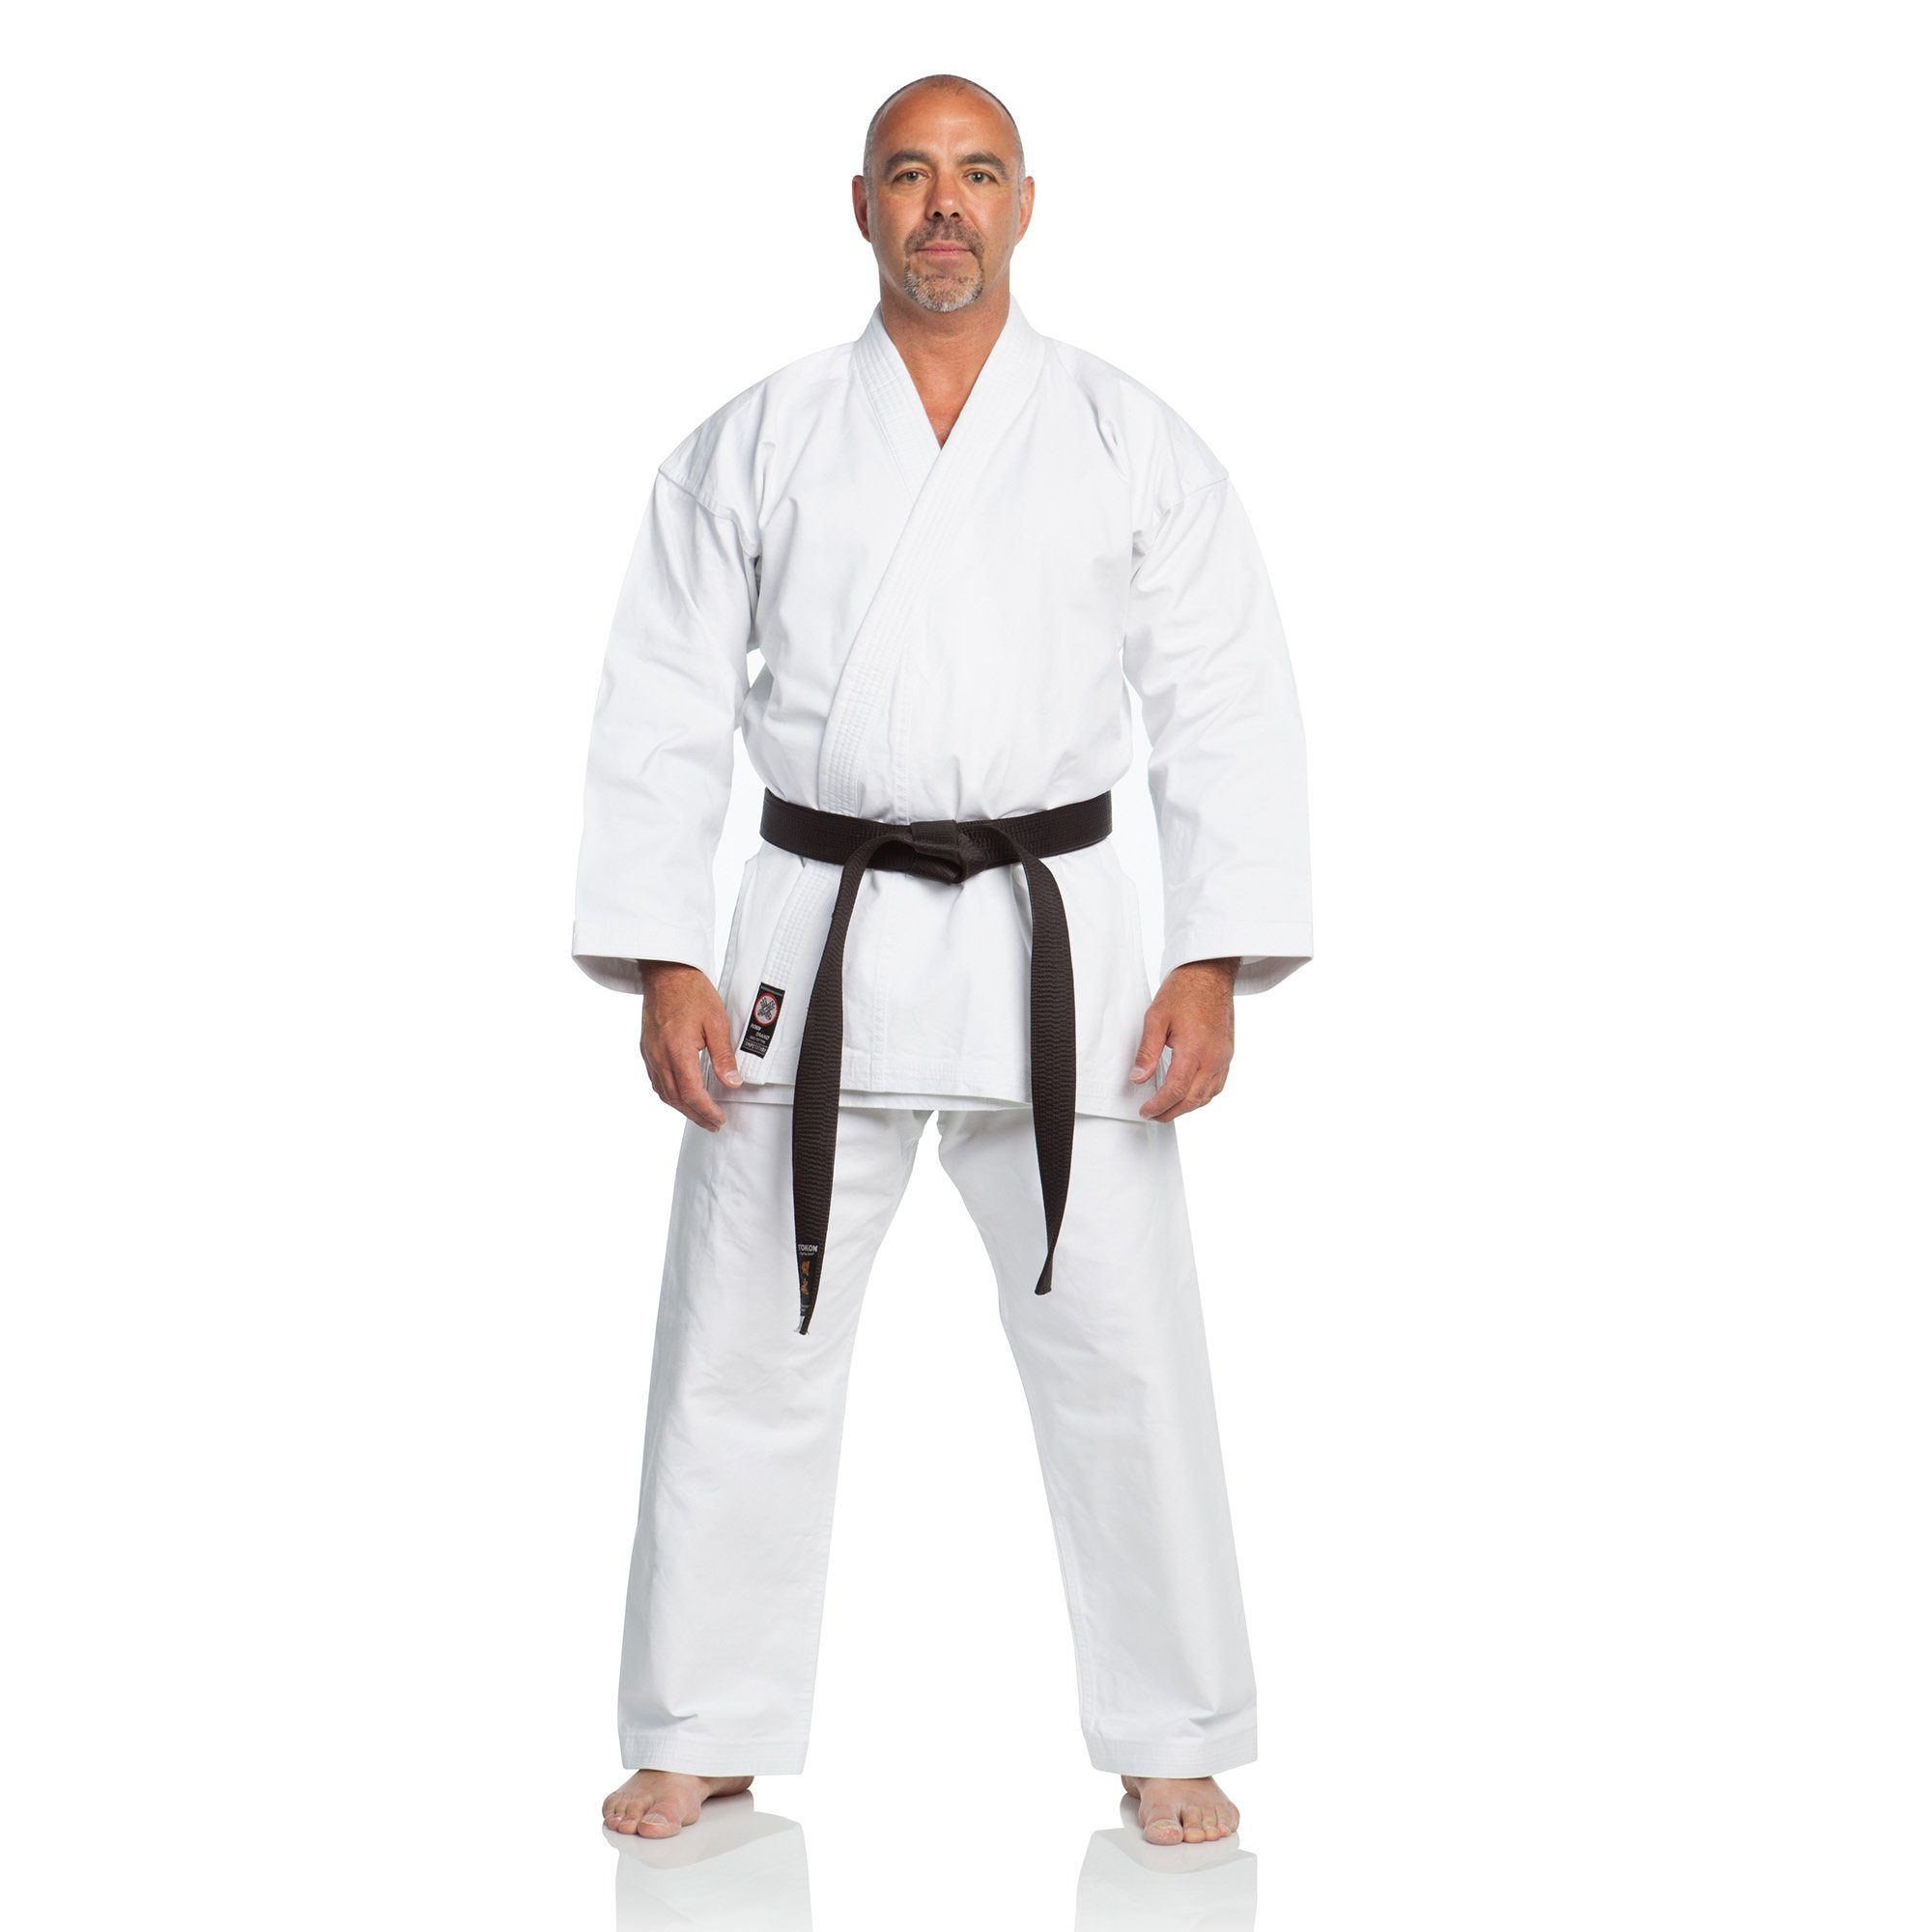 Karate Uniform Best Quality Martial Arts Poly Cotton New GI With Free Belt